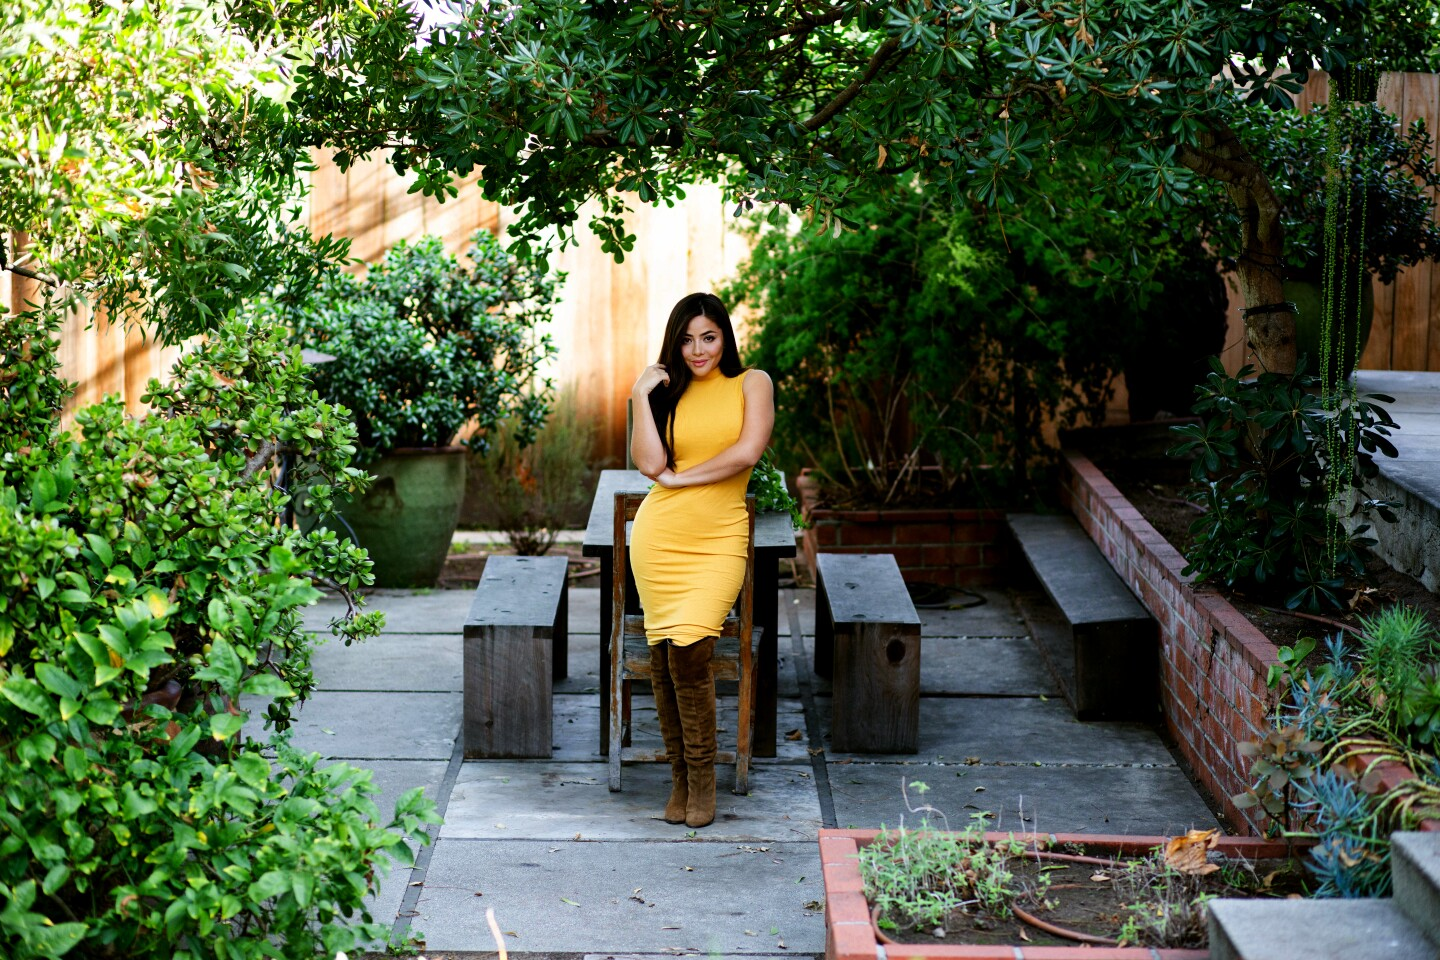 'Narcos: Mexico' actress Teresa Ruiz finds inspiration in her garden. The co-star of Netflix's gritty cartel drama likes to spend her mornings in a leafy haven that reminds Ruiz of her parents' garden in Mexico. Photograohed on Jan. 28, 2020. (Jesse Goddard / For The Times)